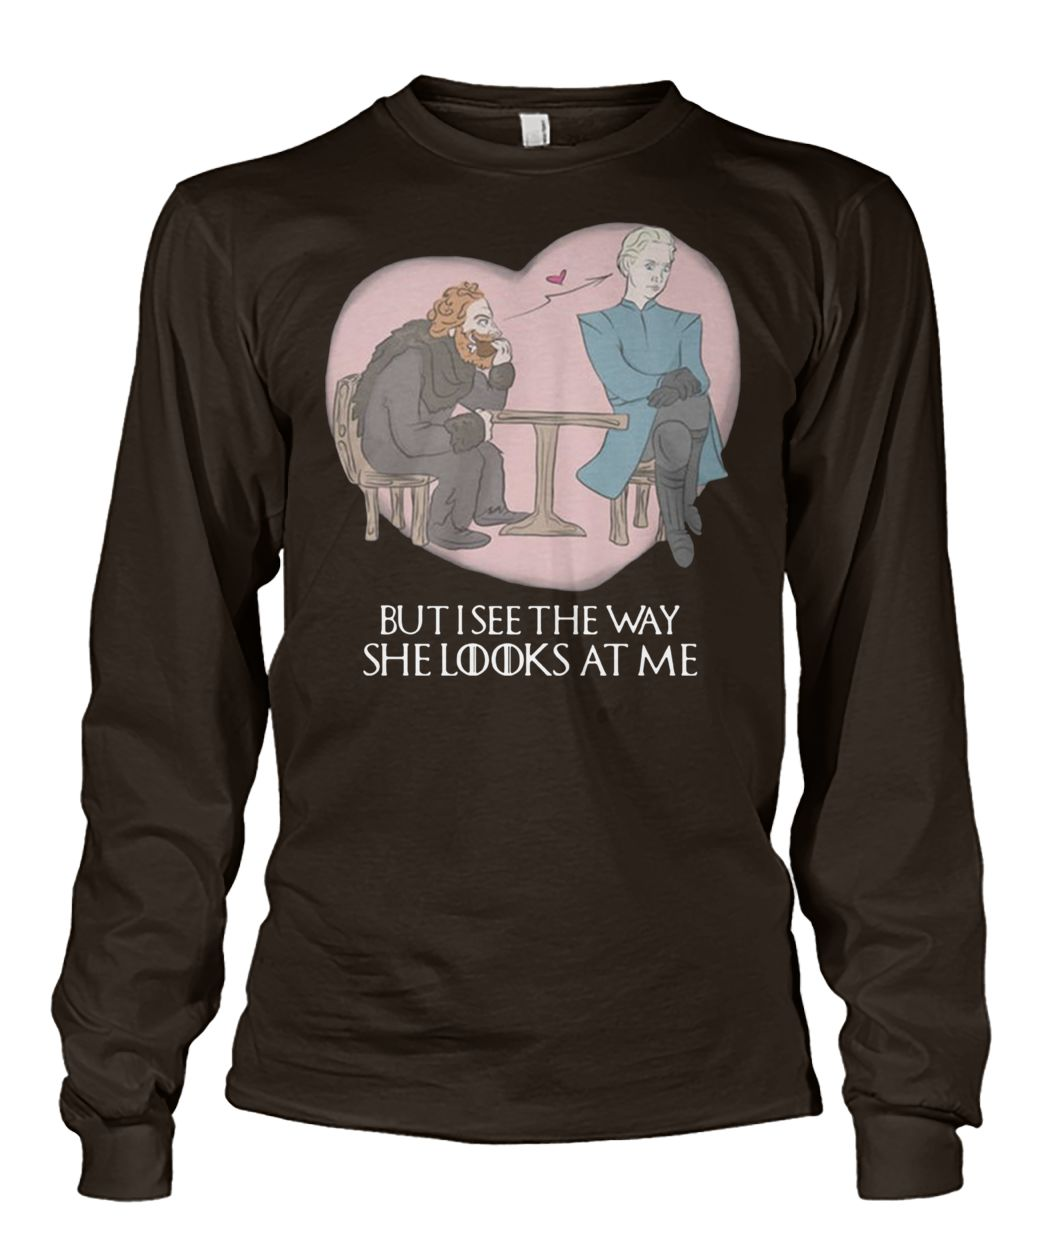 Tormund and brienne but I see the way she looks at me game of thrones unisex long sleeve